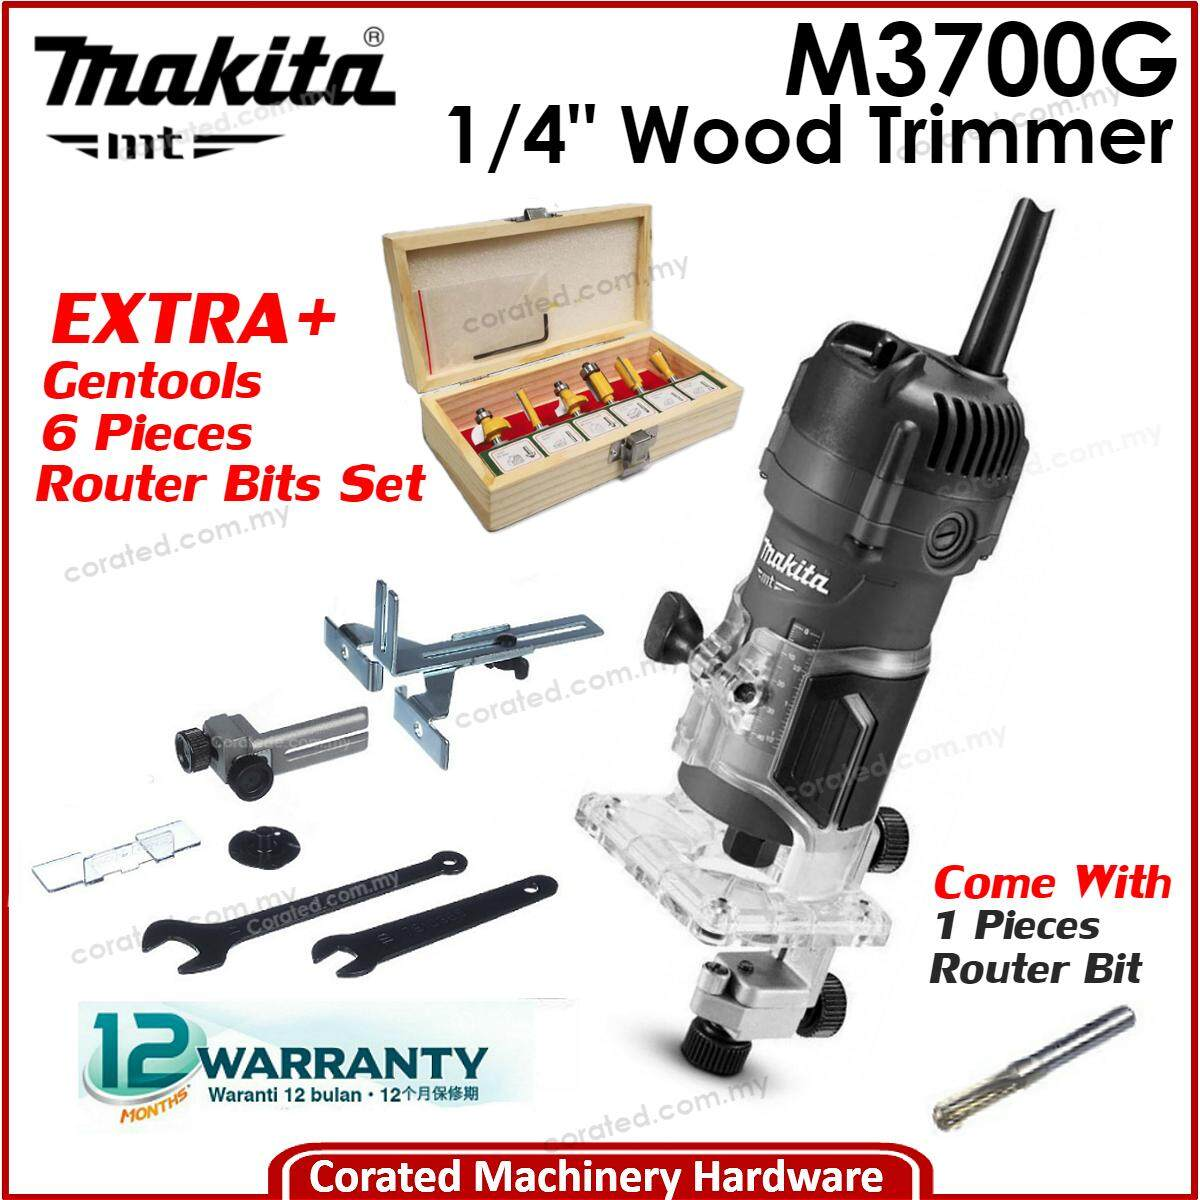 [CORATED] Makita MT M3700G 1/4 - 6MM Wood Trimmer